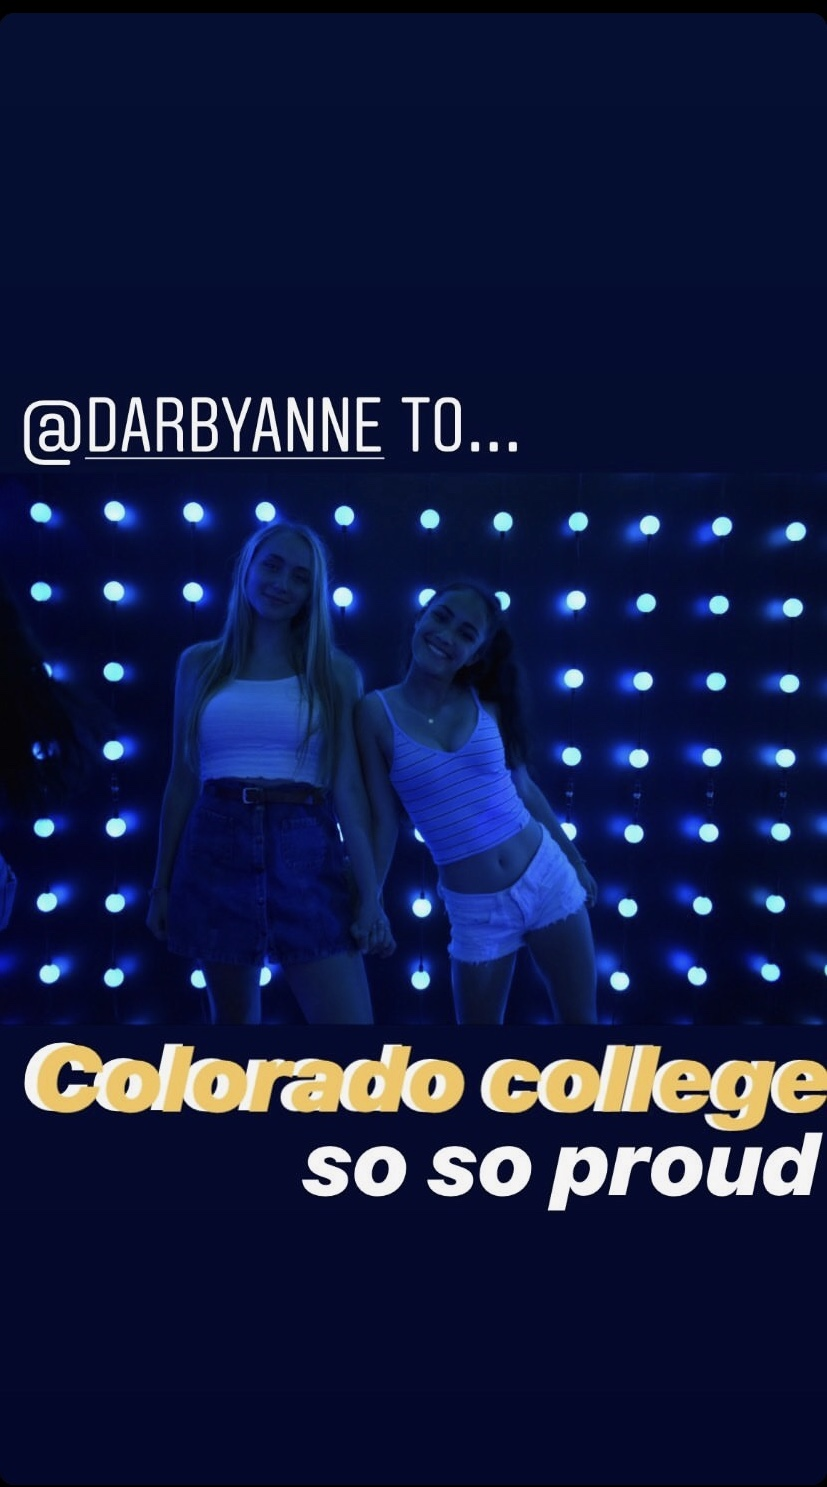 Senior Emma Chen's Instagram story congratulates her friend after getting into Colorado College with the words